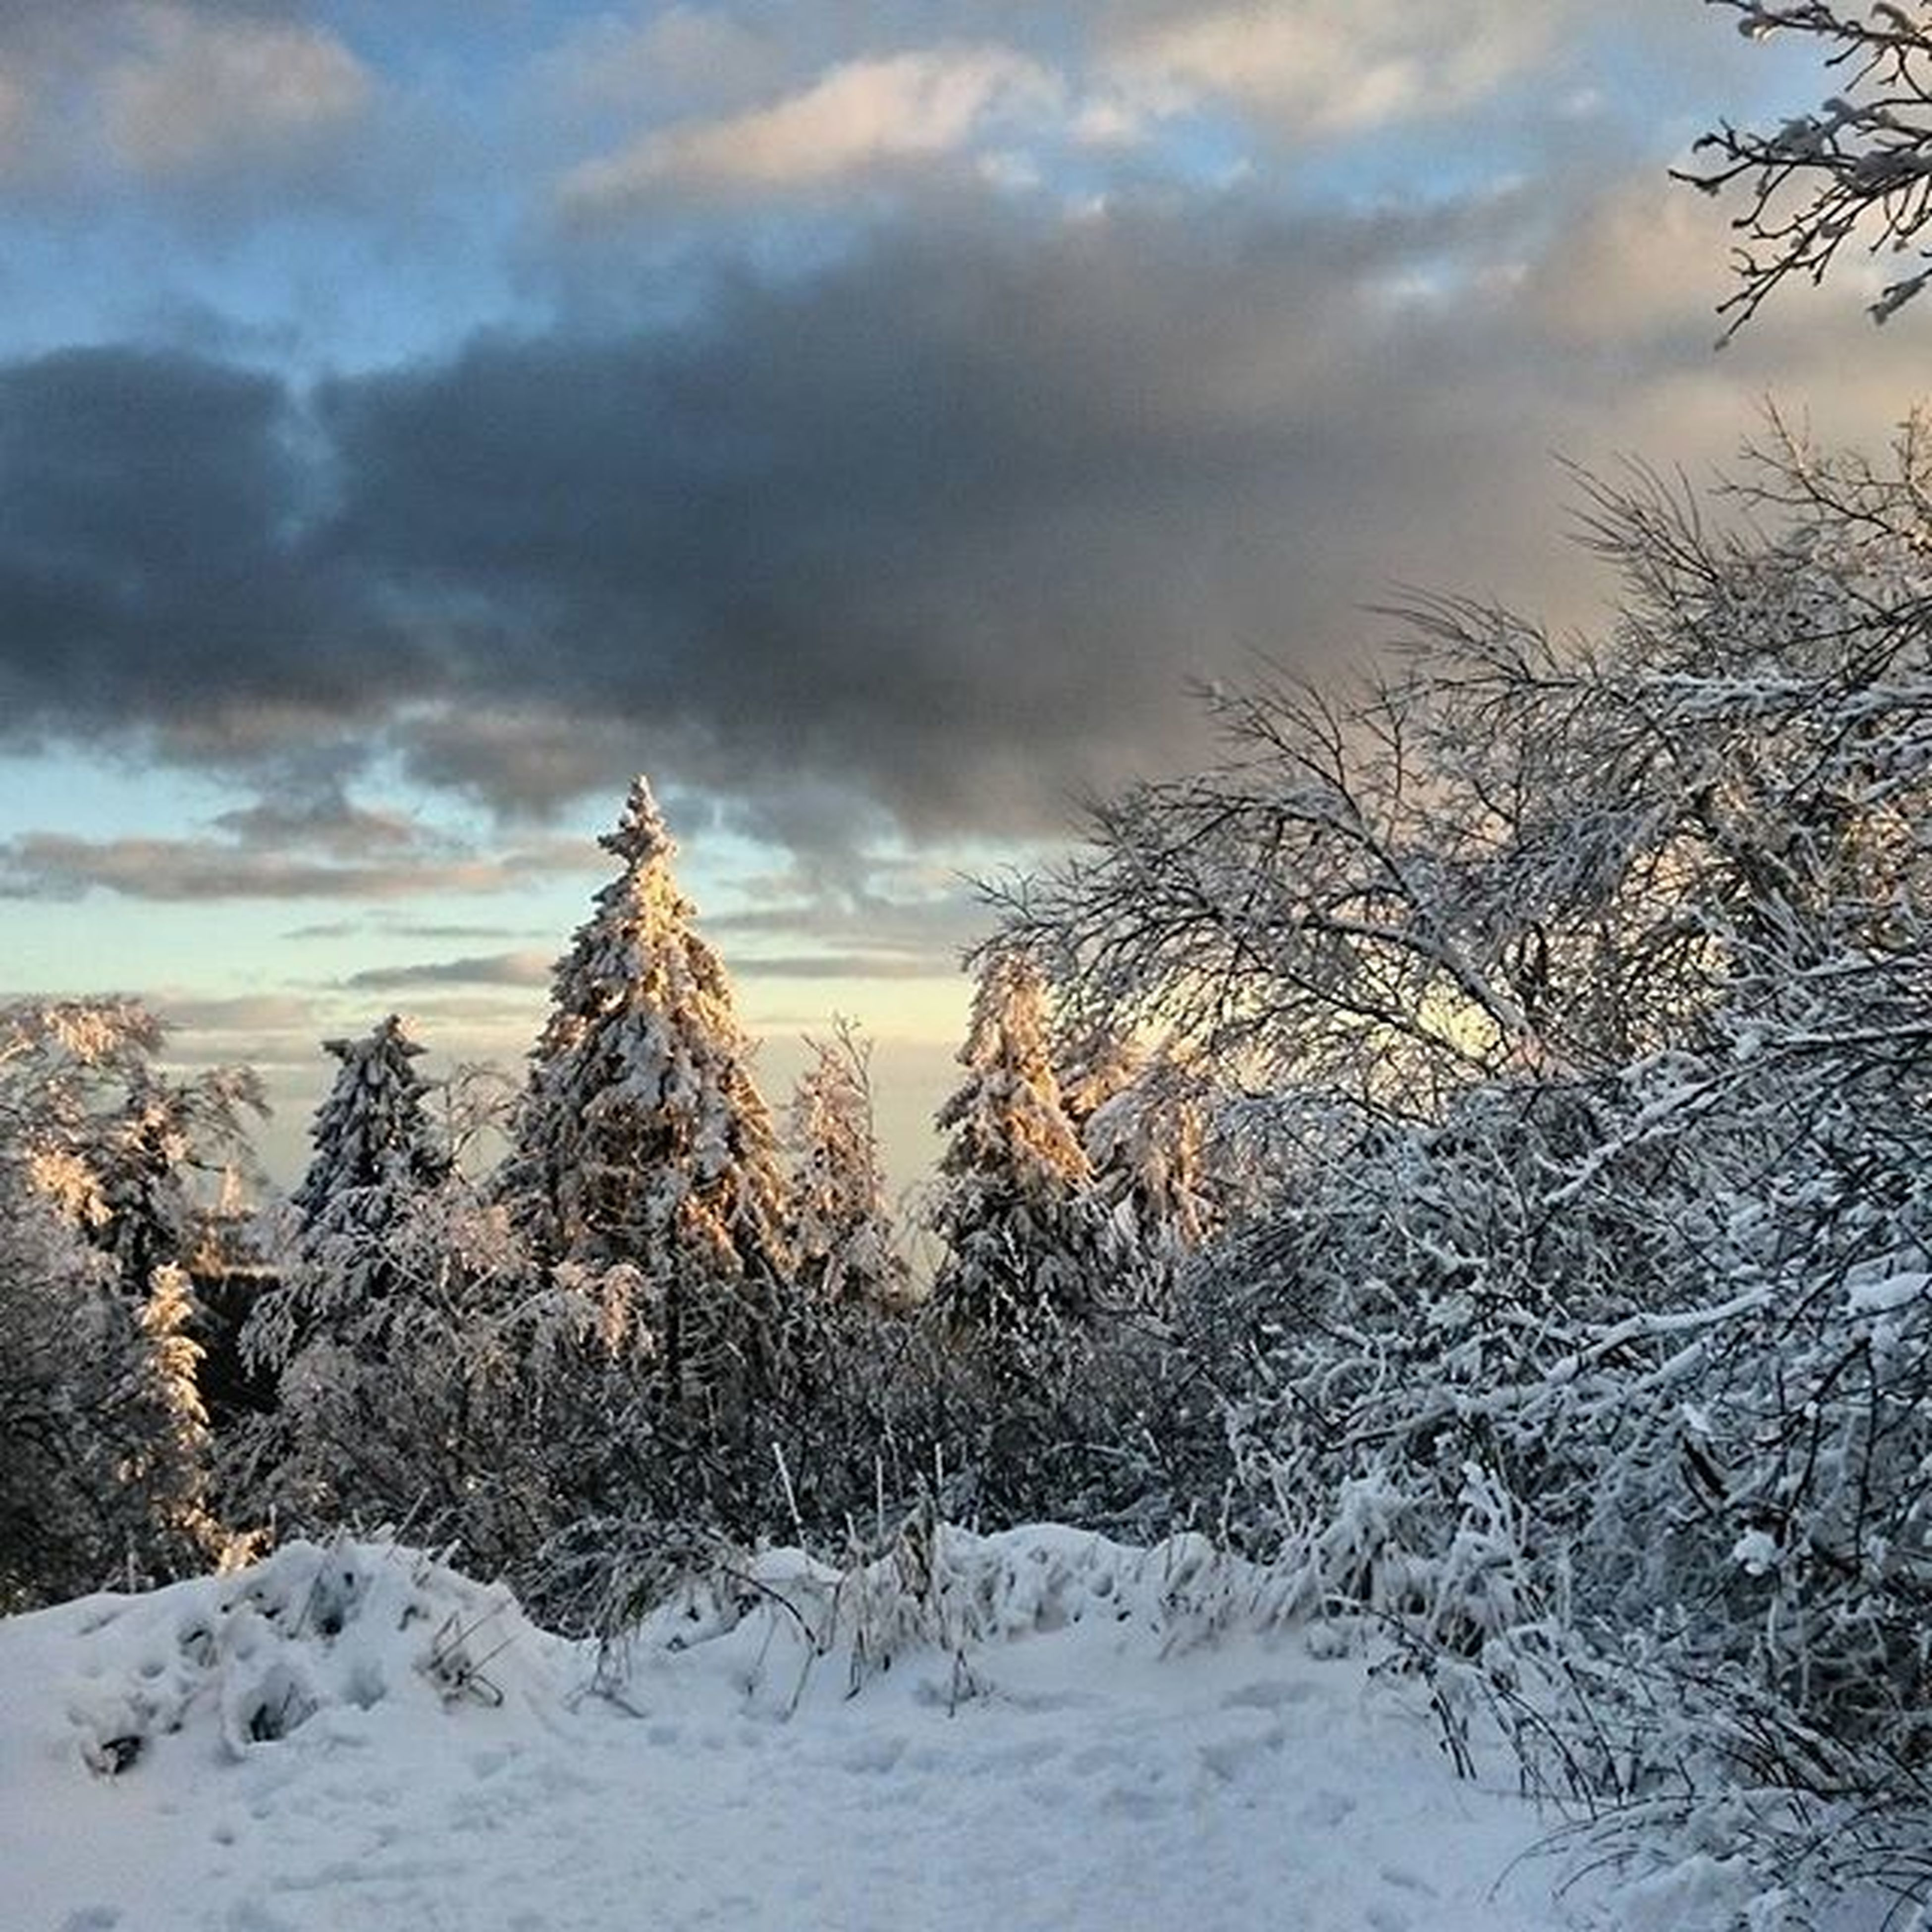 snow, sky, winter, cold temperature, cloud - sky, weather, cloudy, tranquility, tranquil scene, season, scenics, landscape, nature, beauty in nature, covering, cloud, tree, field, non-urban scene, overcast